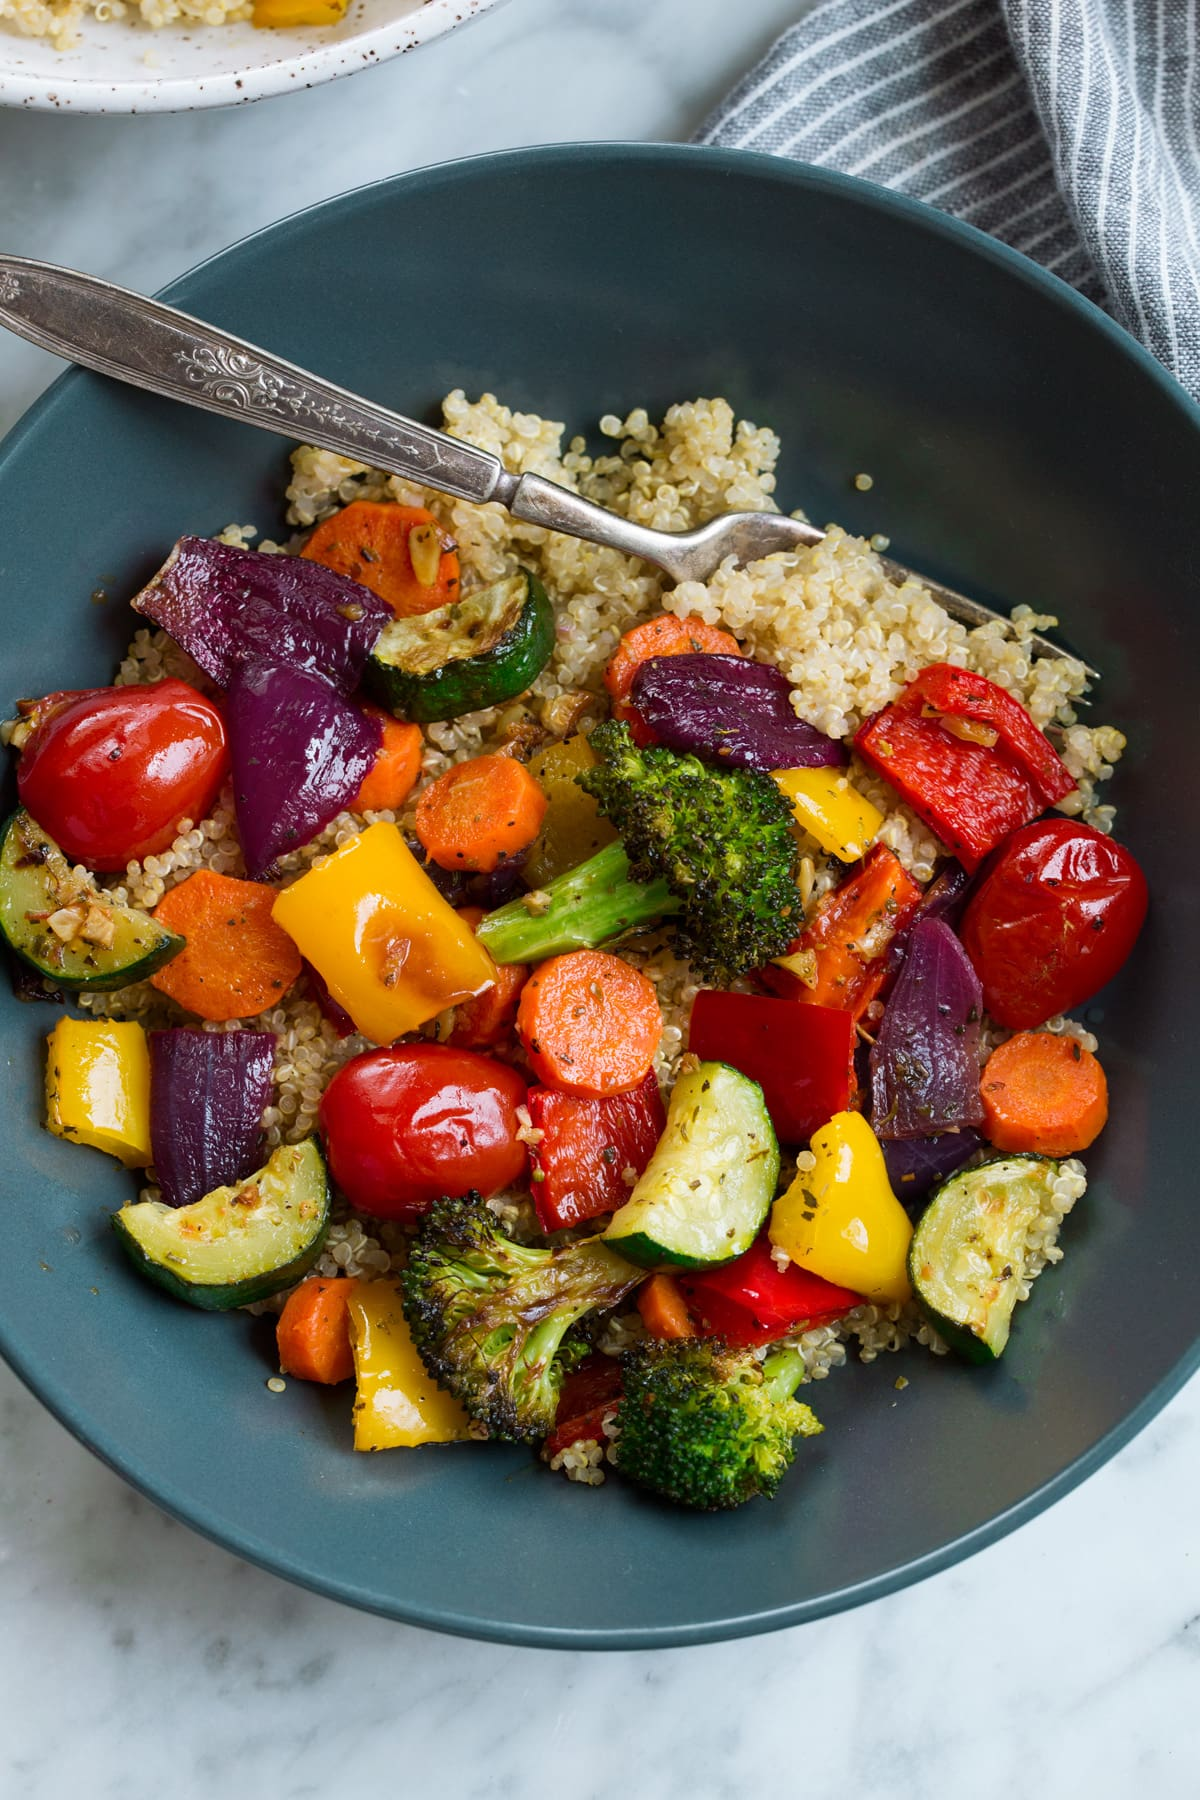 Healthy Cookout Recipes: Oven Roasted Vegetables Recipe